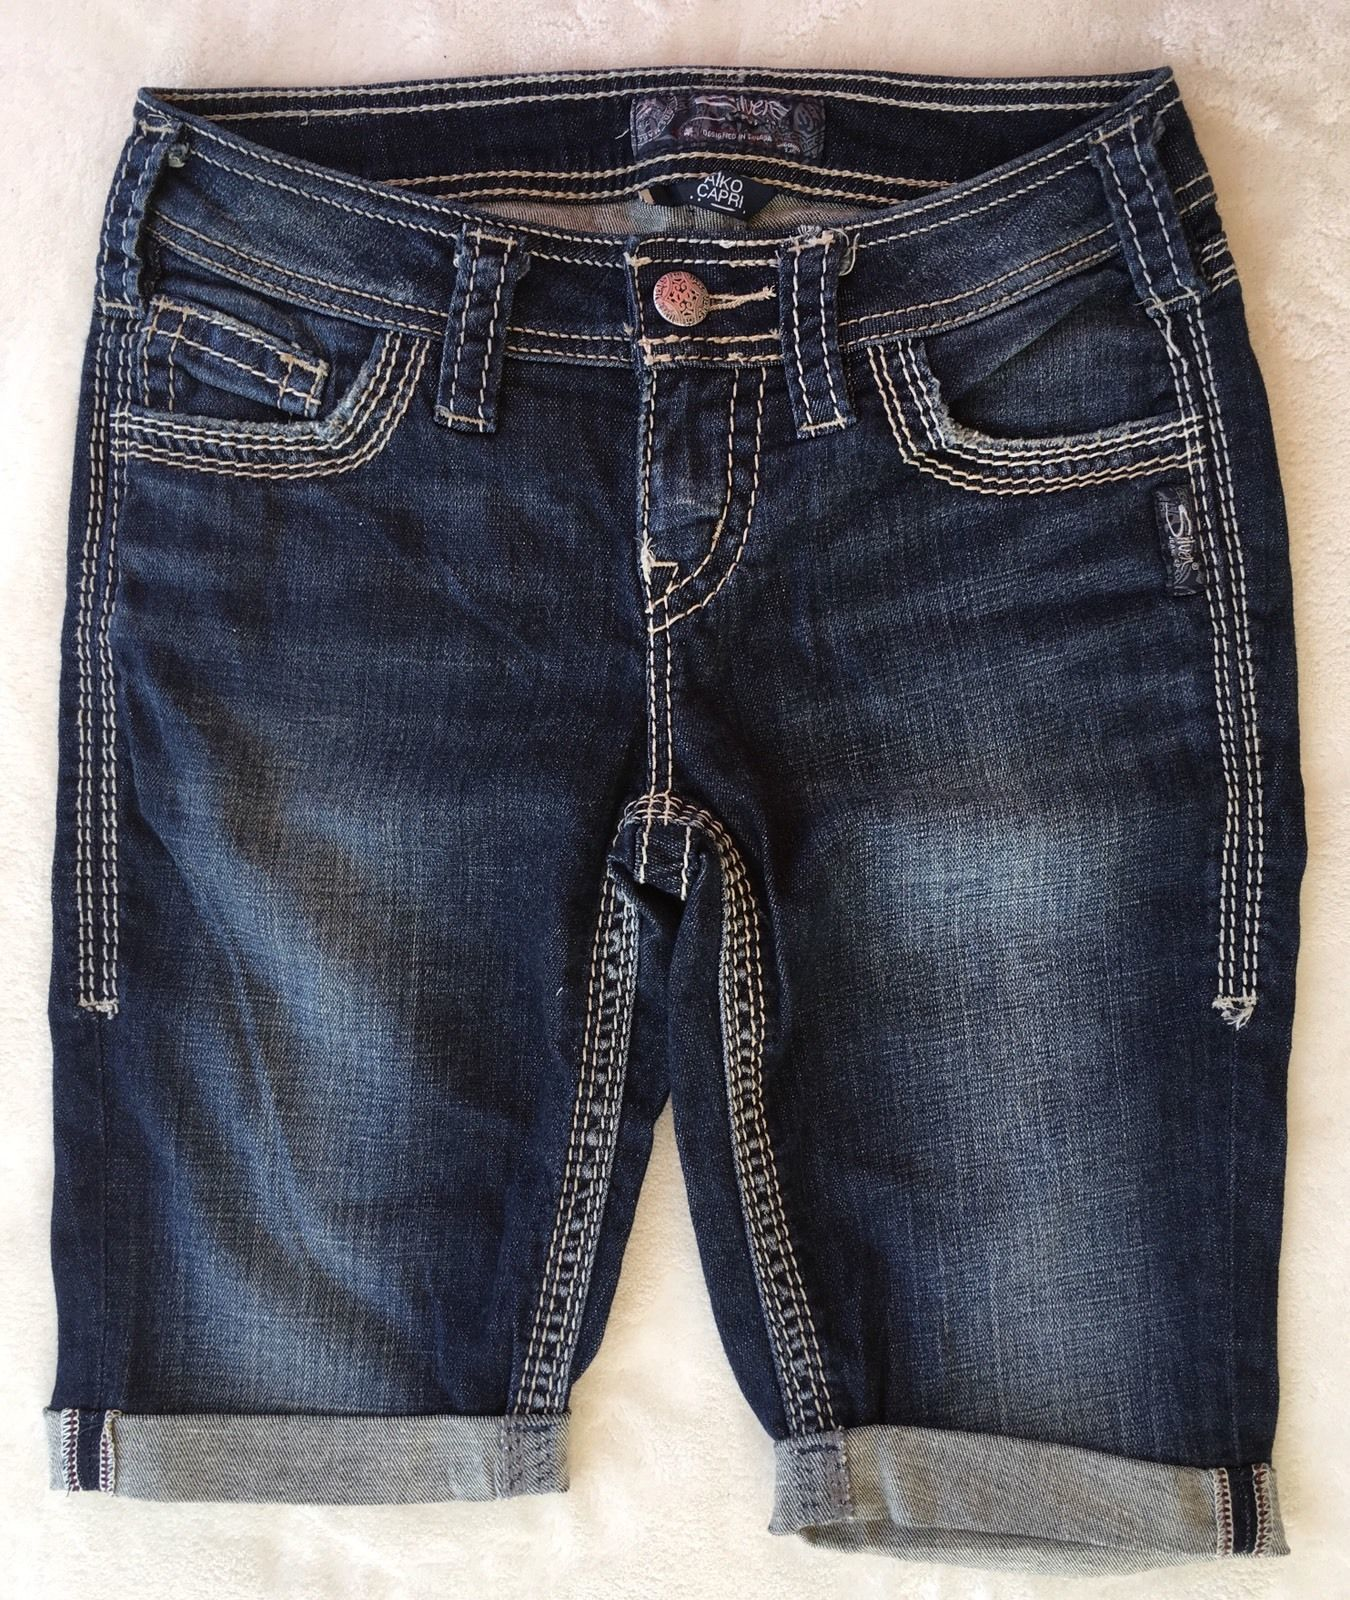 New SILVER Jeans Sale Buckle Dark Mid Rise Aiko Denim Jean Stretch Shorts 27